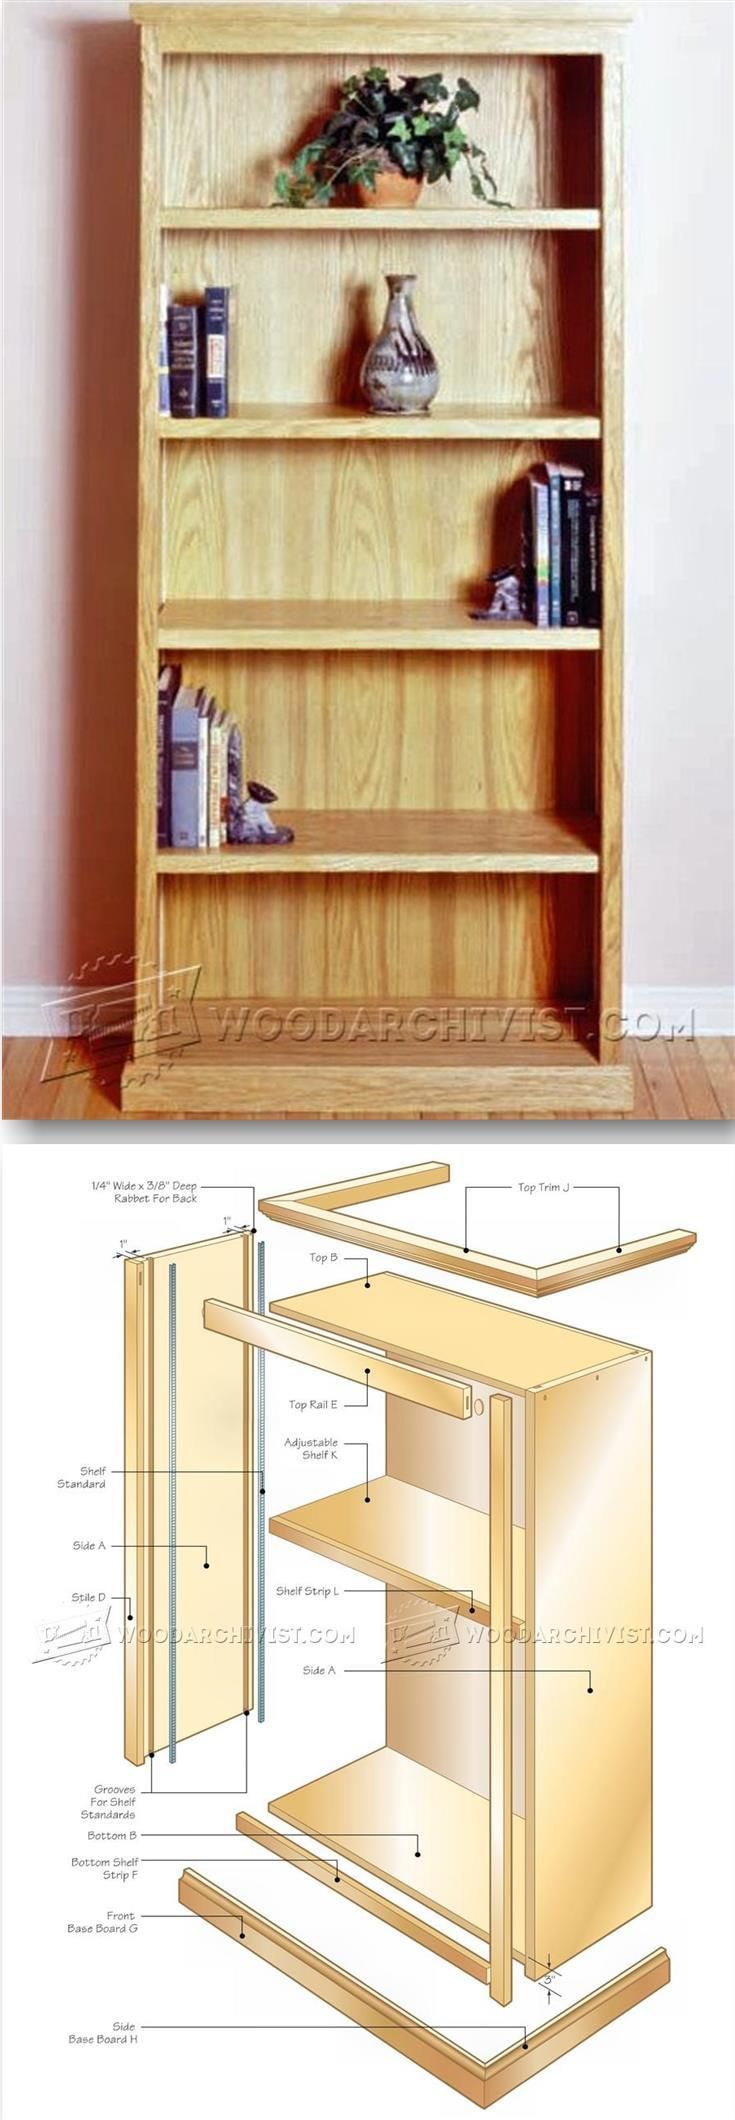 Diy Furniture Projects 269 Best Diy Woodworking Projects And Plans Images On Pinterest